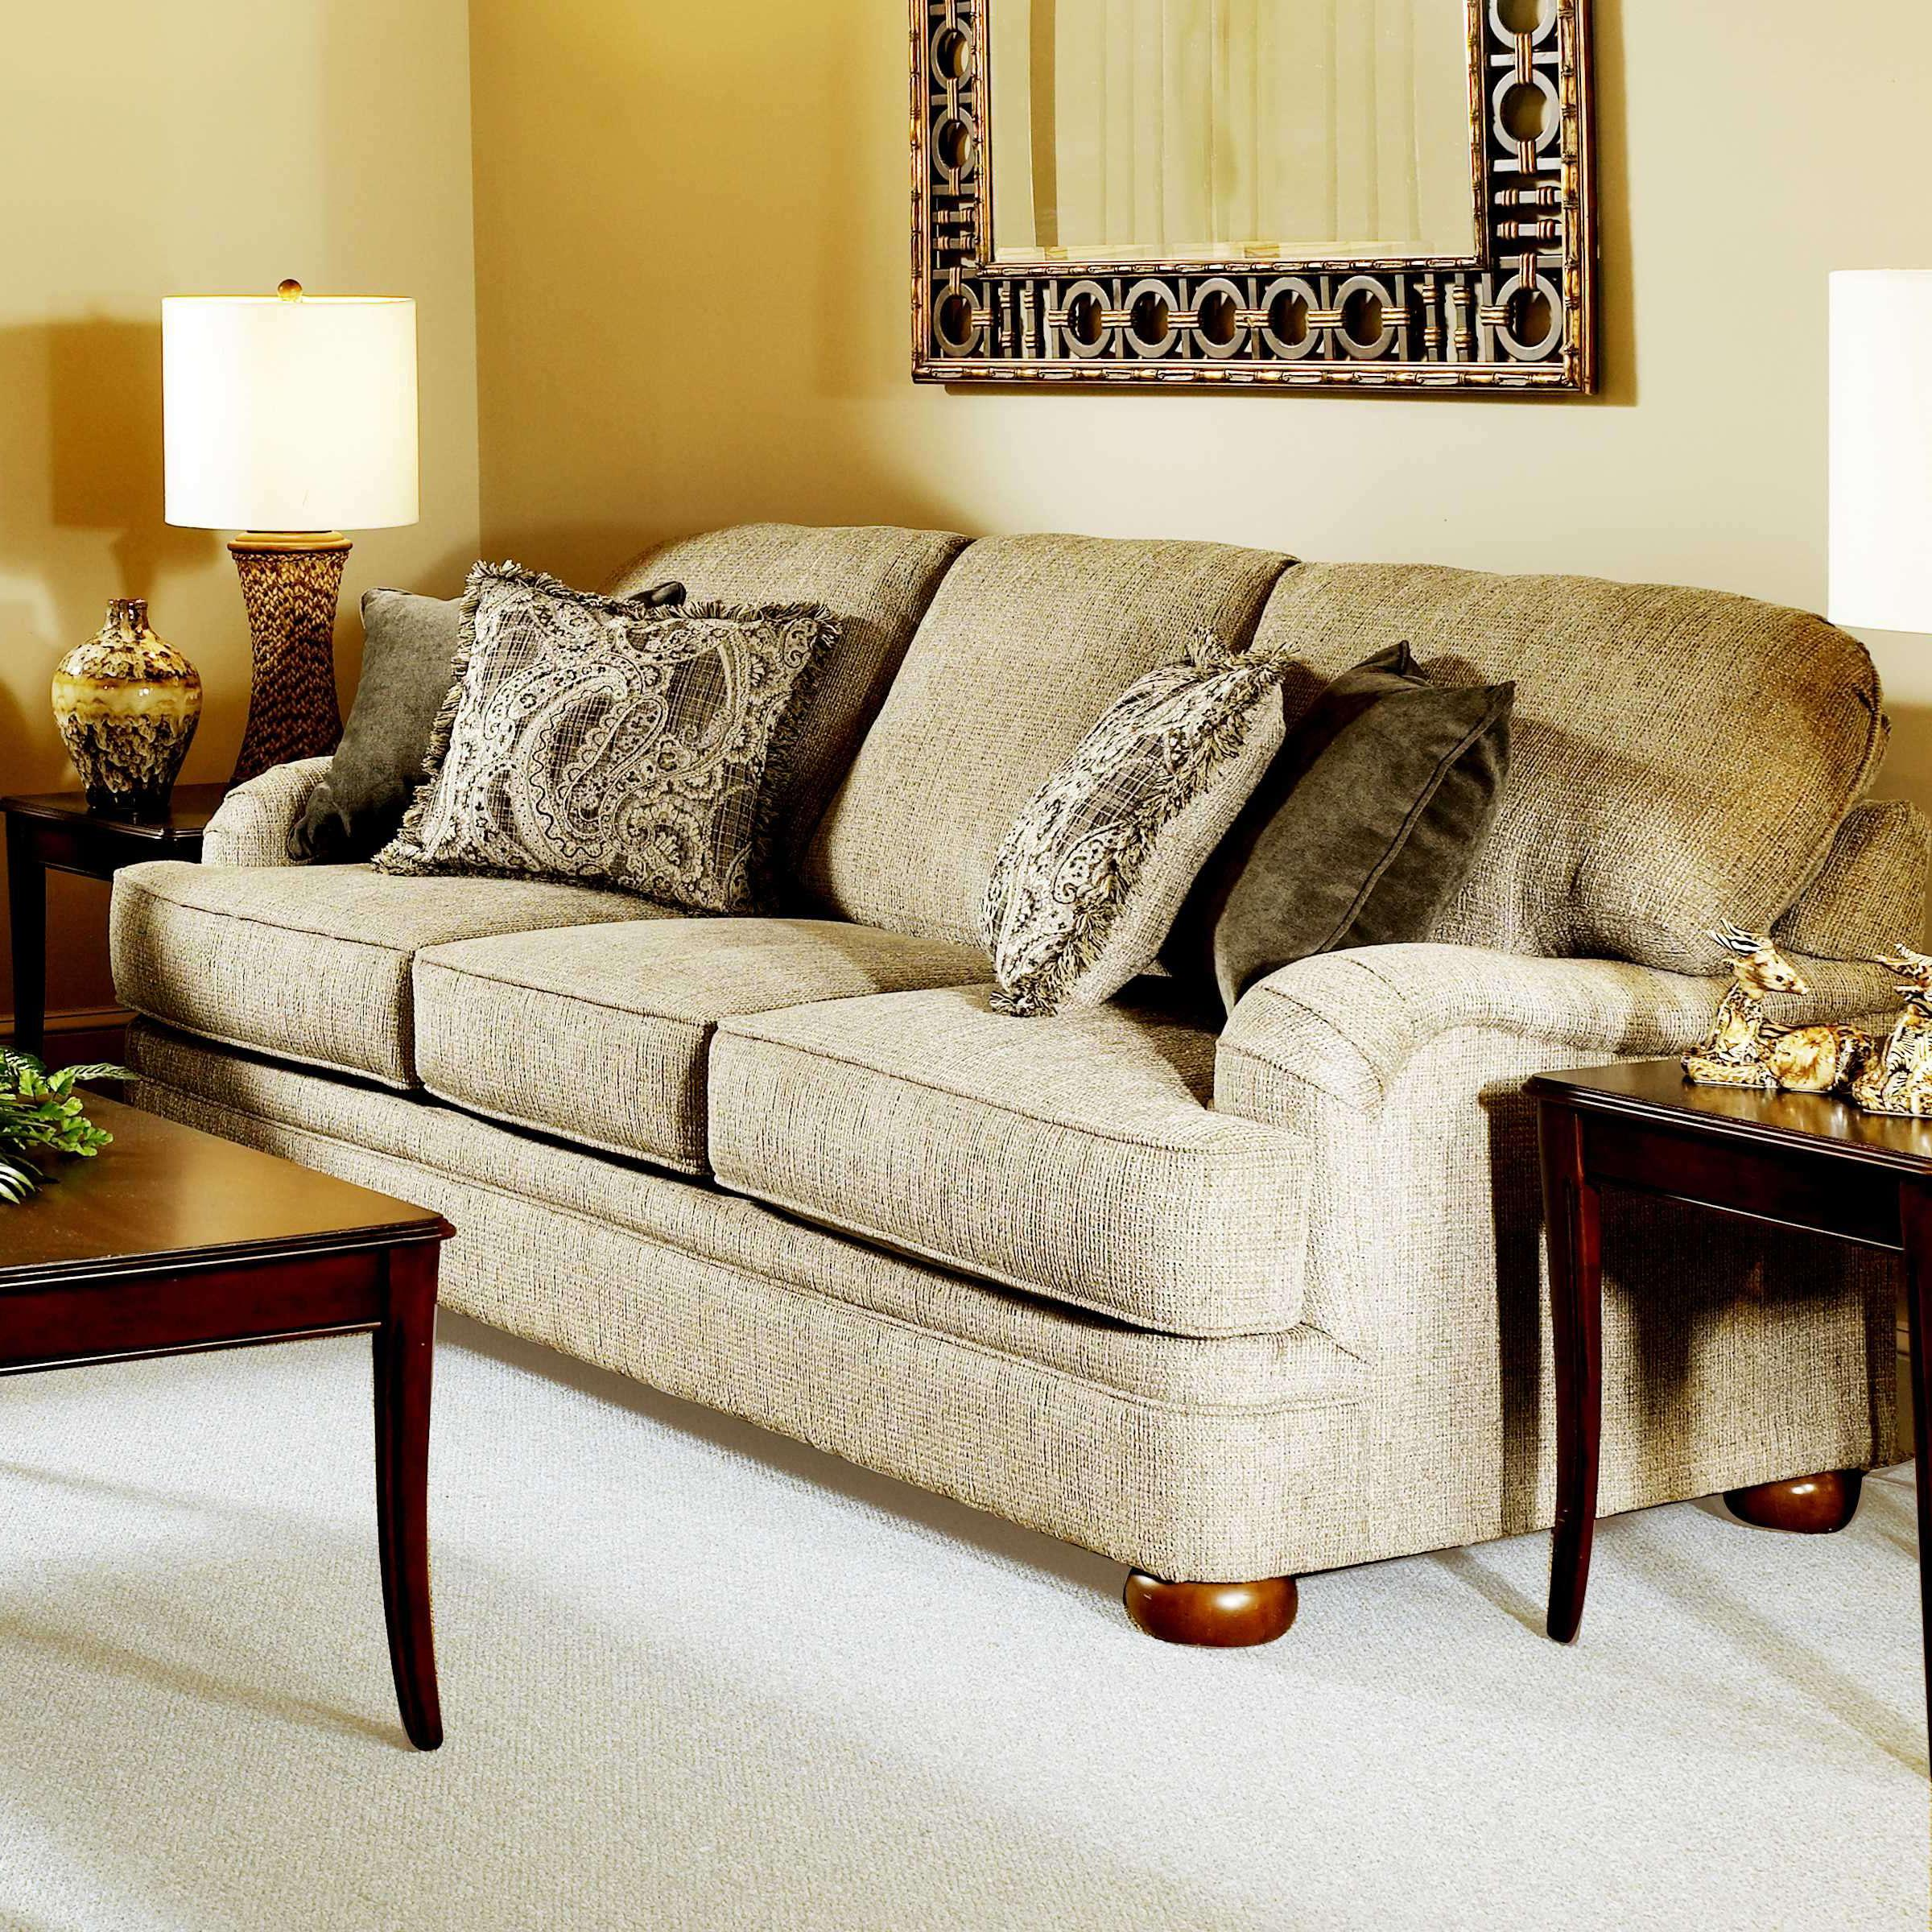 Serta Upholstery By Hughes Furniture 5500 Sofa   Item Number: 5500 S Beige